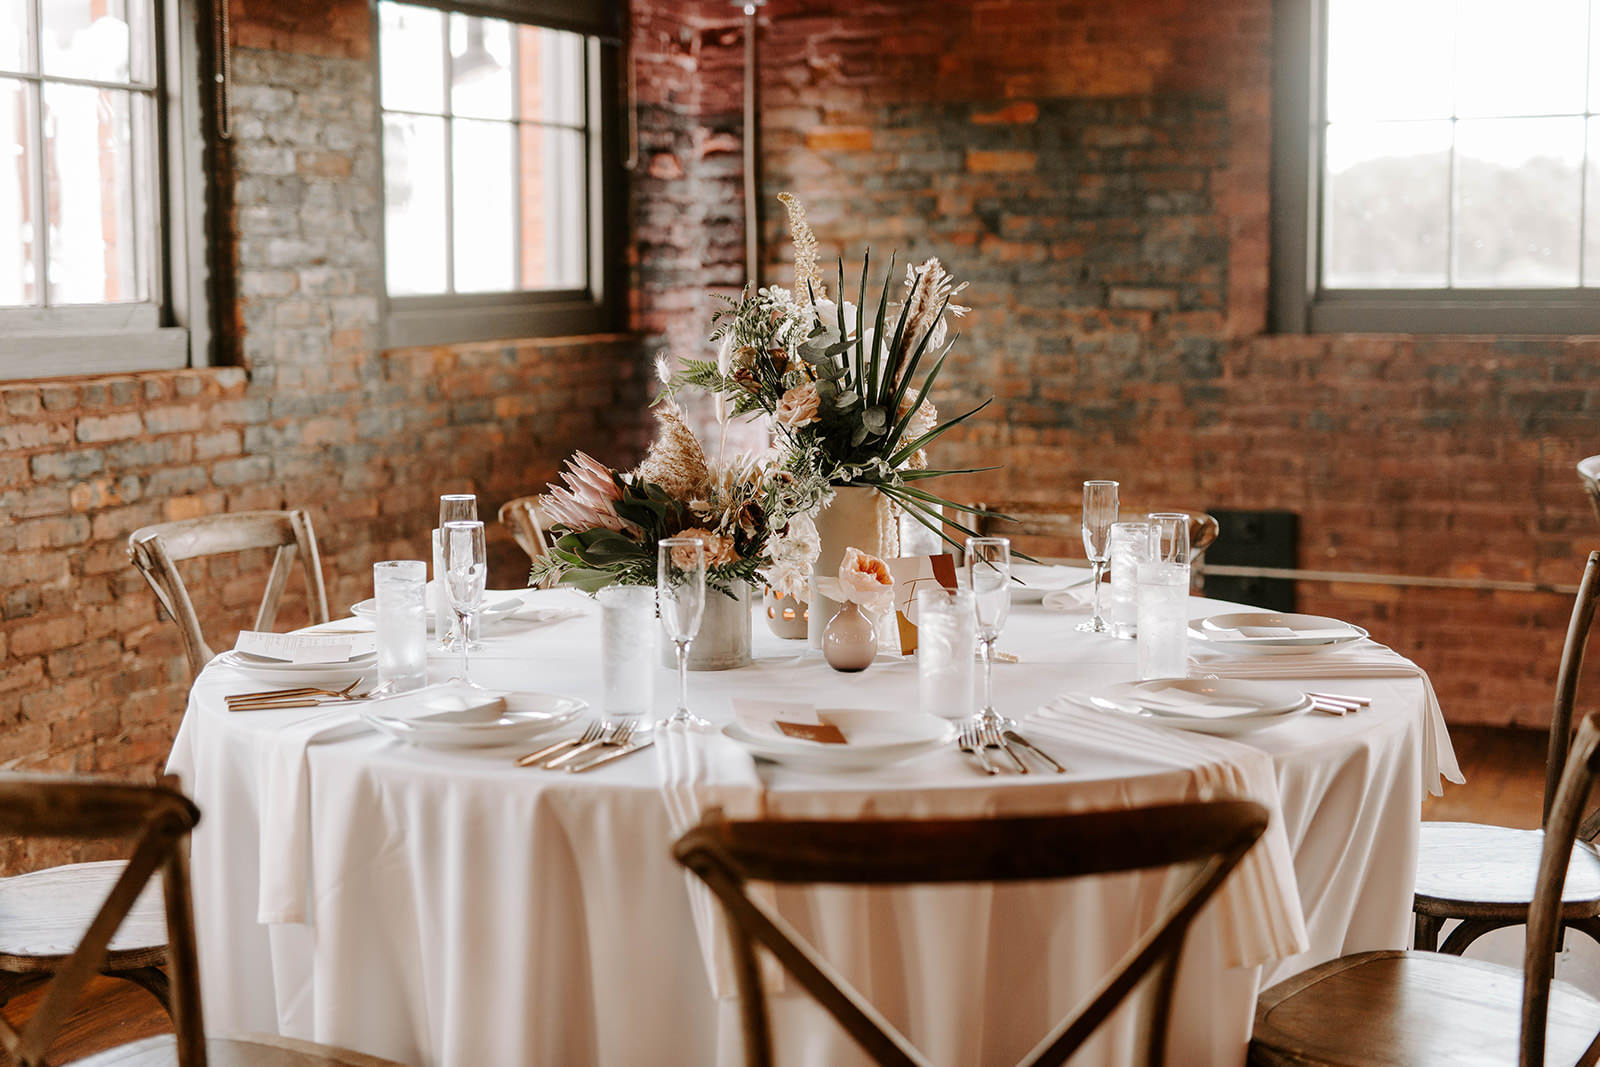 Boho Whimsical Wedding Reception Decor, Round Table with White Linen, Wooden Crossback Chairs, White Vases with Palm Fronds, King Protea, Blush Pink and White Floral Centerpieces   Tampa Bay Wedding Planner Coastal Coordinating